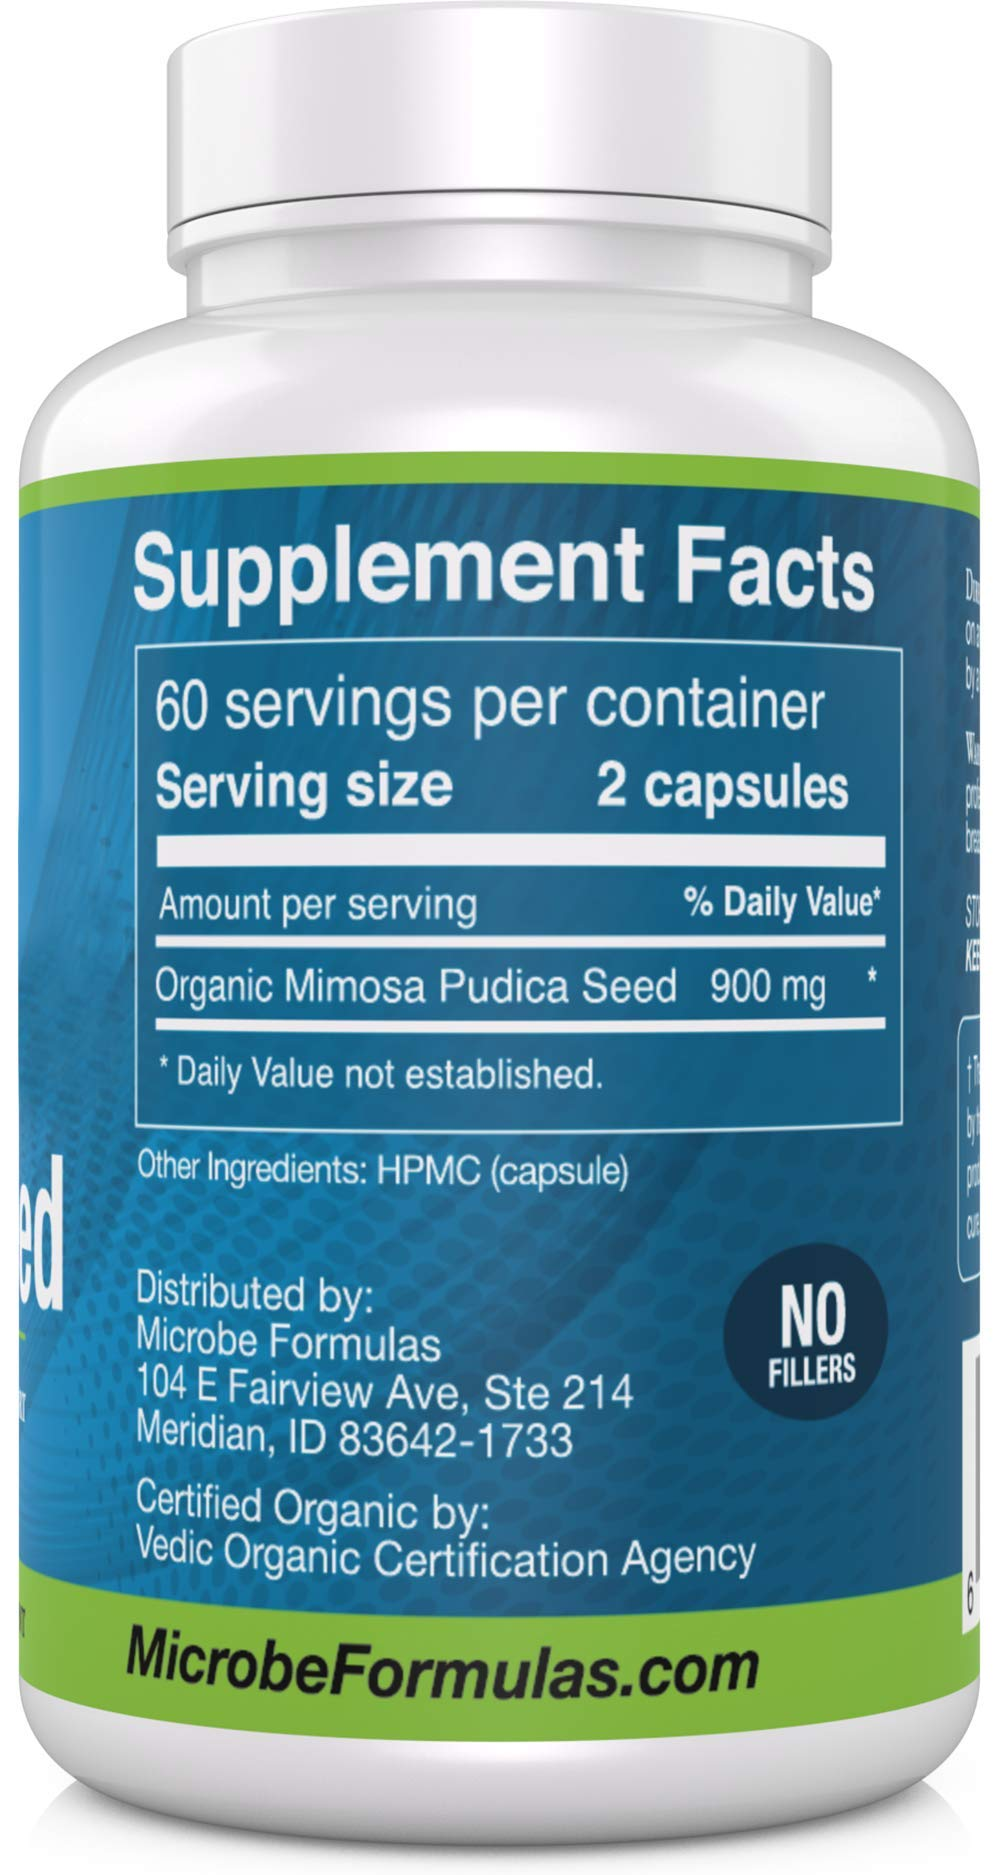 Microbe Formulas: Mimosa Pudica - Intestinal Support - 120 Capsules - Supports Detoxification - Antimicrobial Benefits - Fat Soluble Organic Supplement - Dietary Supplement - Healthy Intestinal Tract by Microbe Formulas (Image #2)